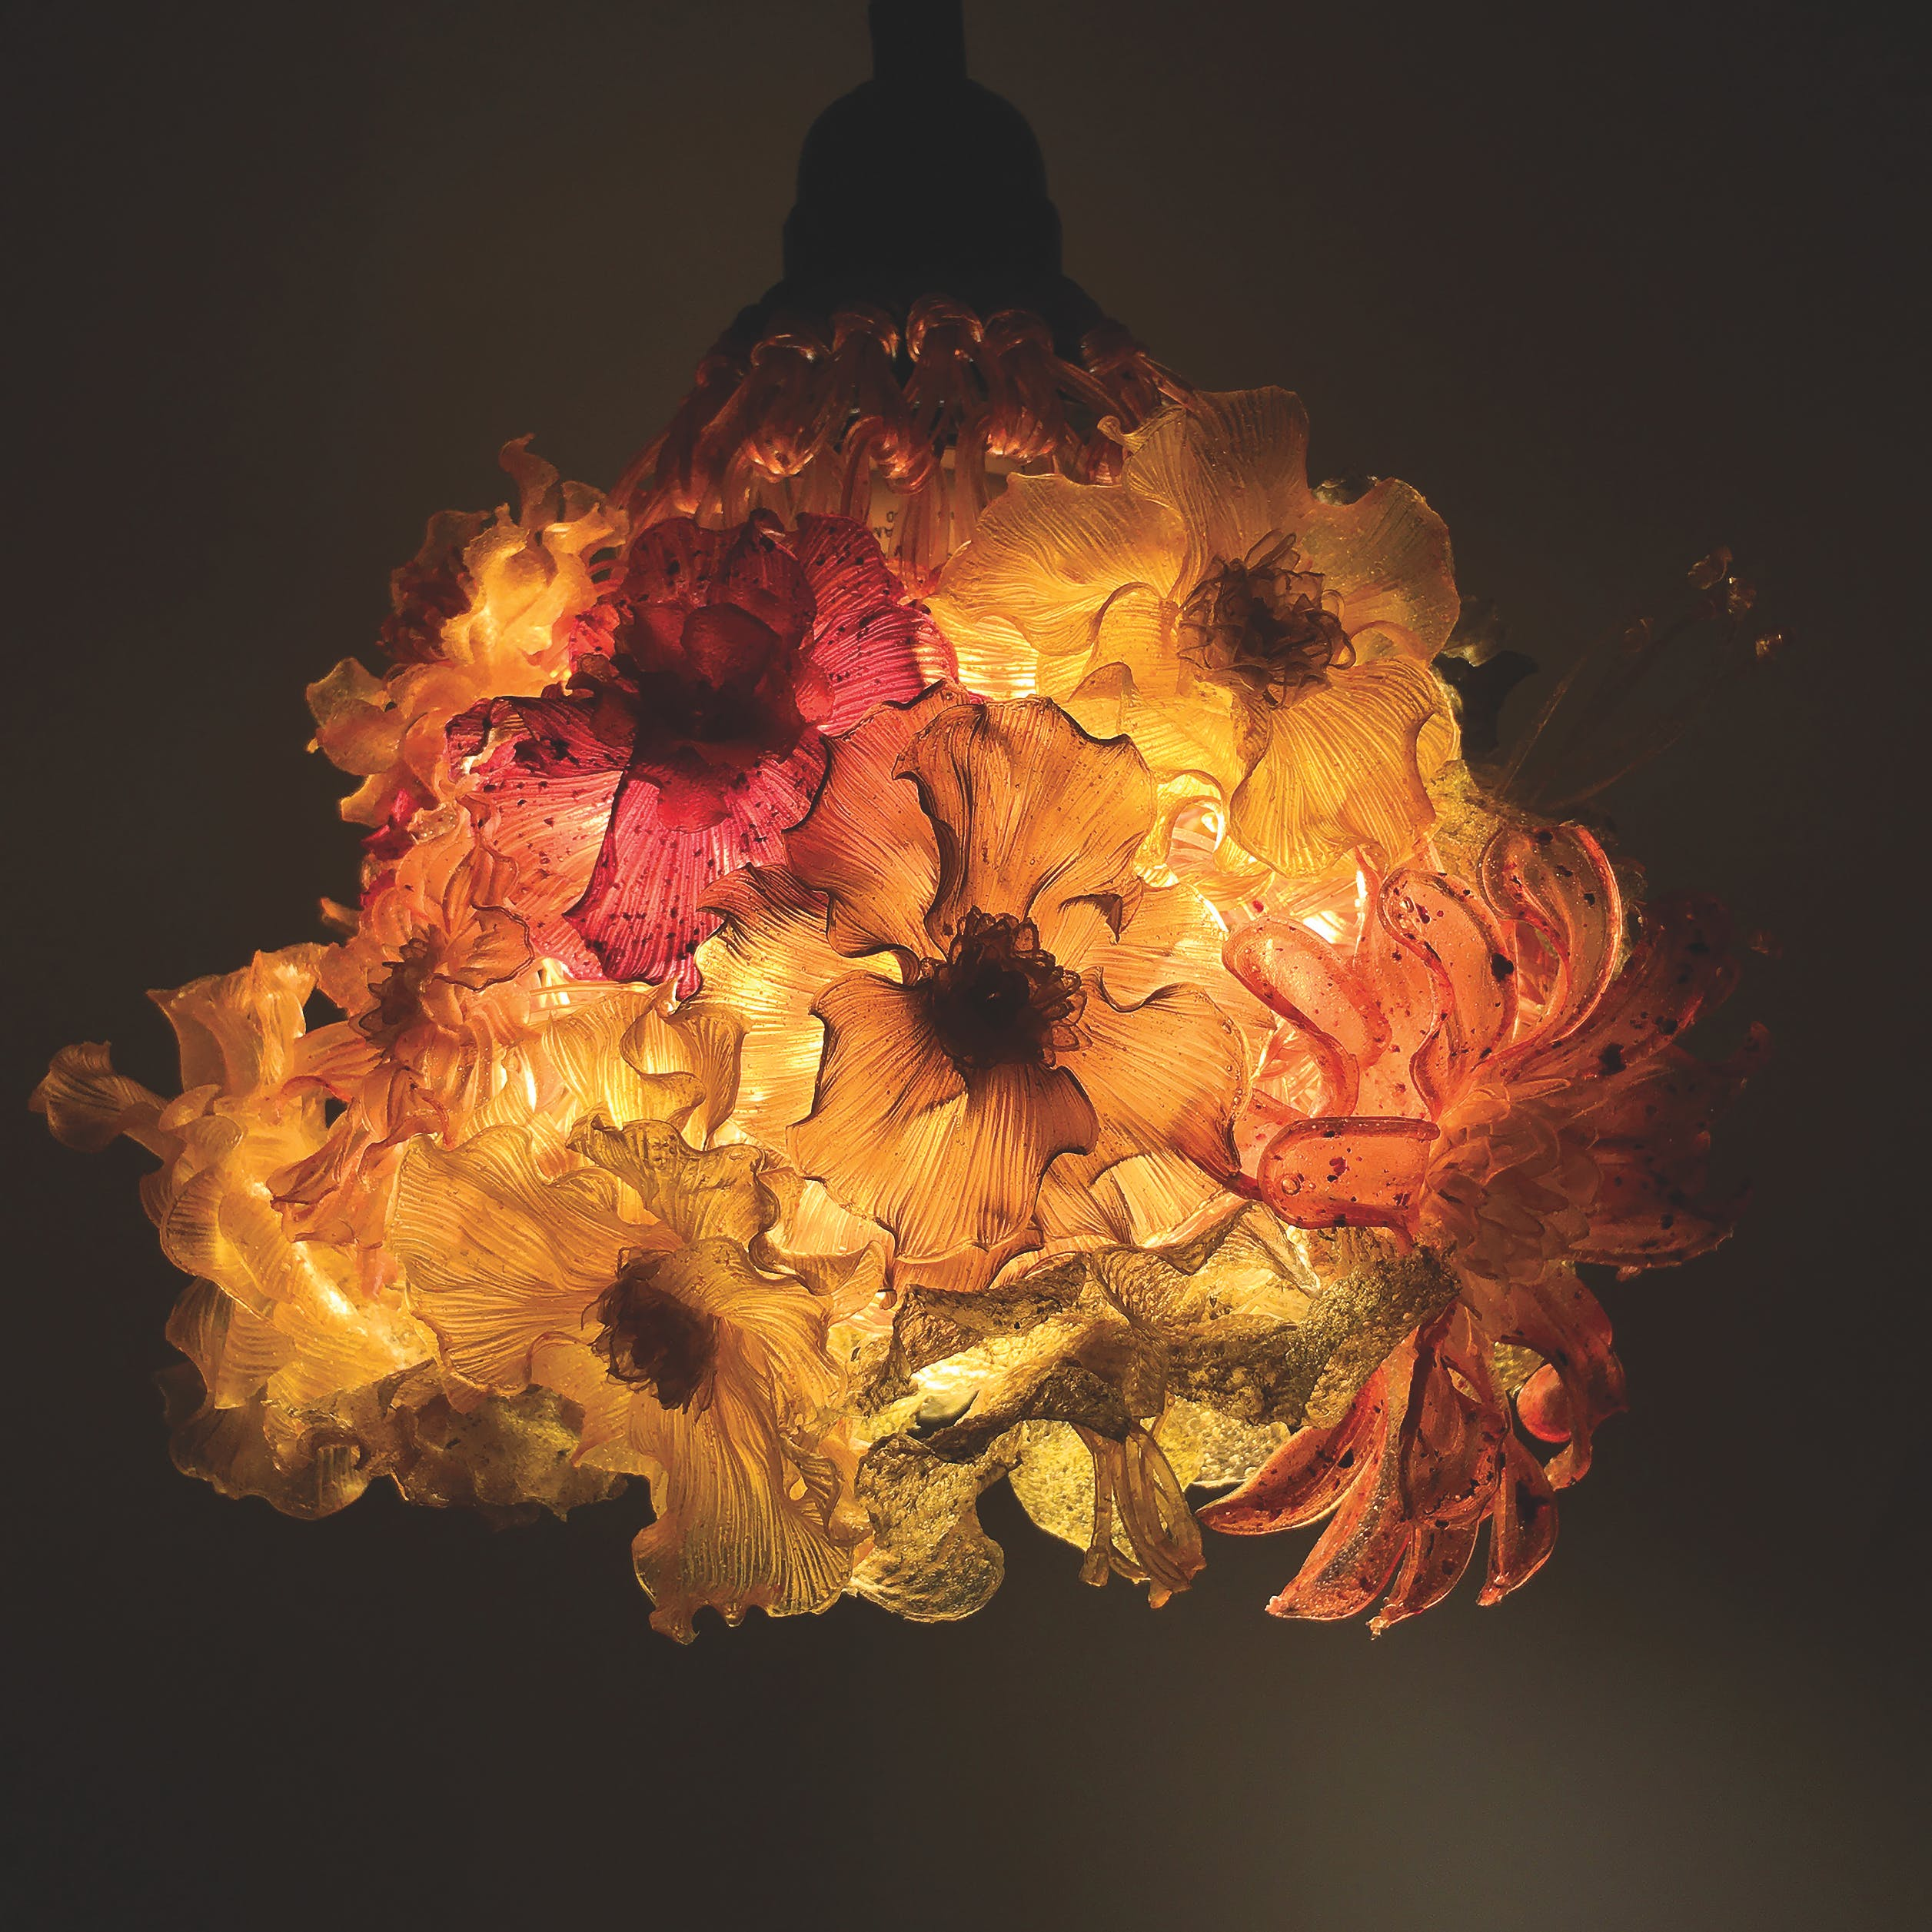 Illuminated lampshade covered with flowers made from agar in a dark setting